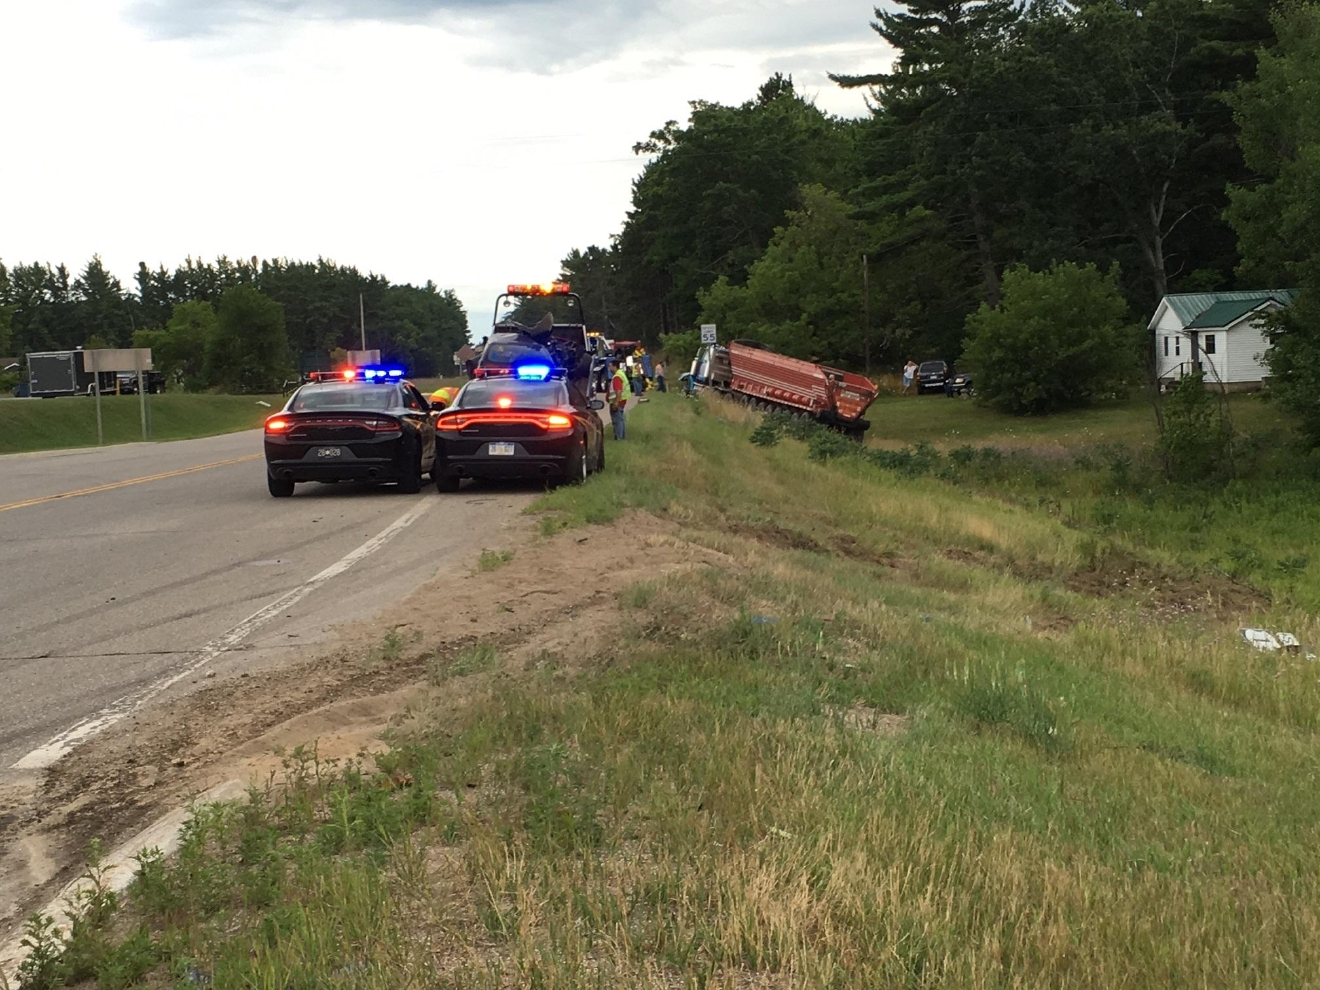 The crash happened just before 6 p.m. near Fife Lake.